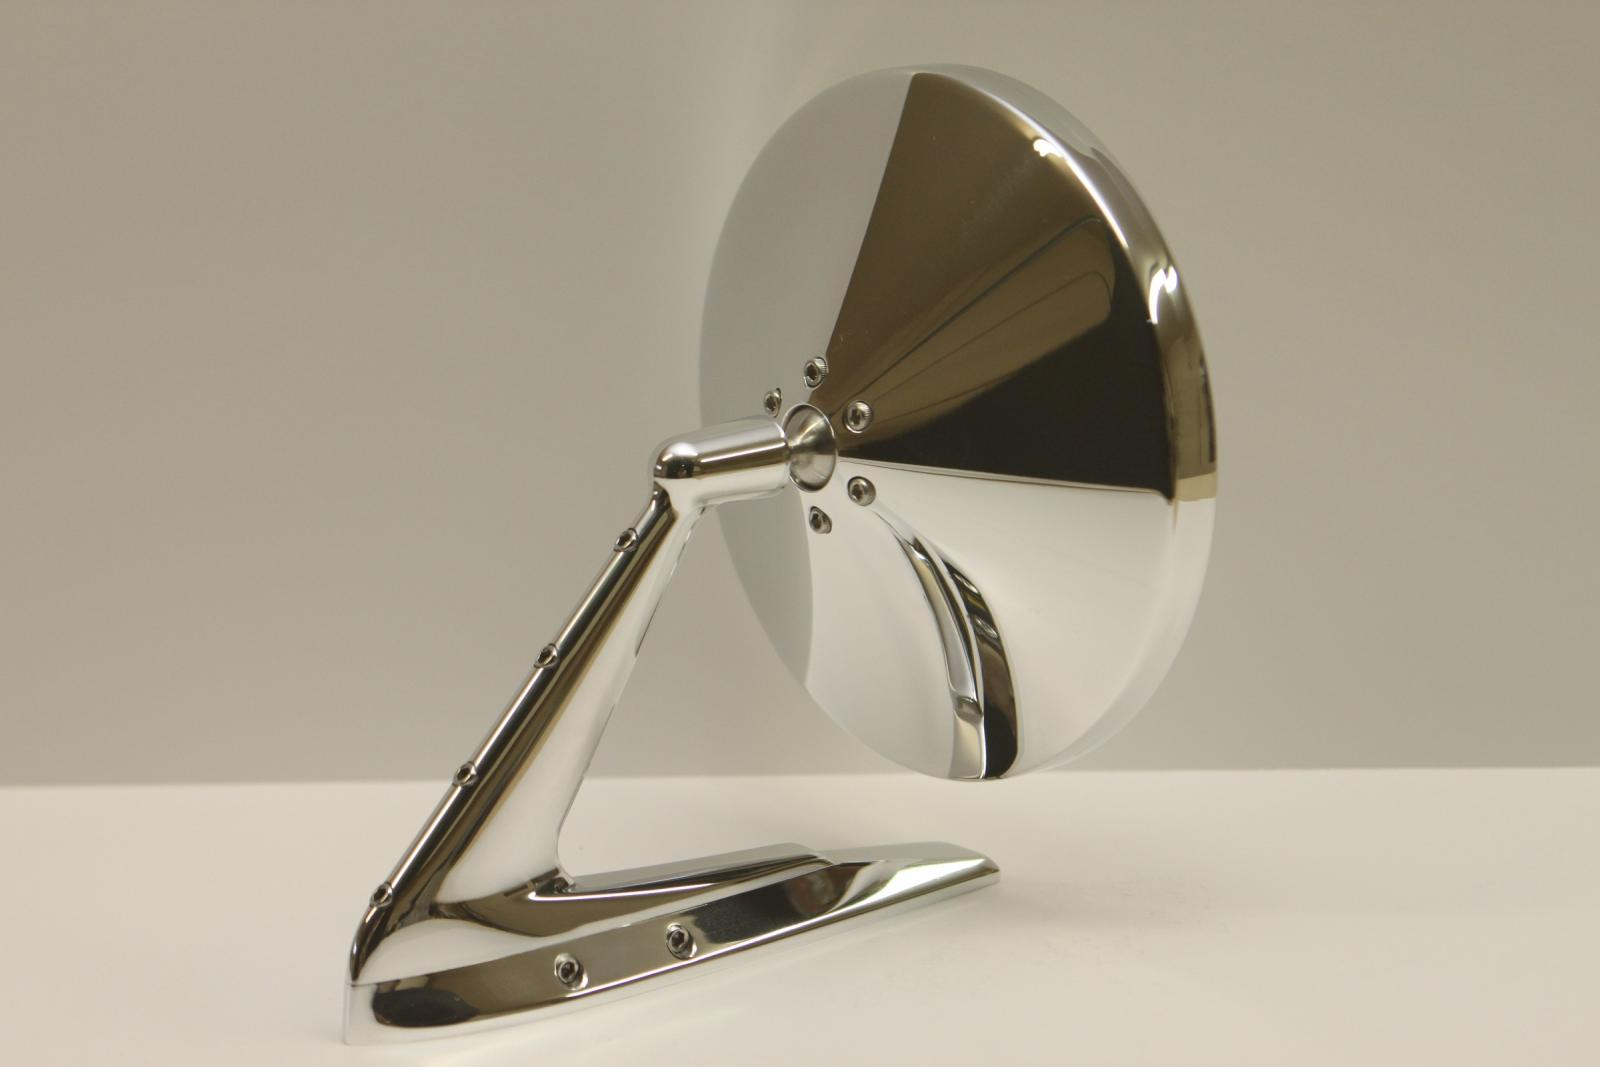 Thread billet rides muscle car billet side view mirrors now in stock